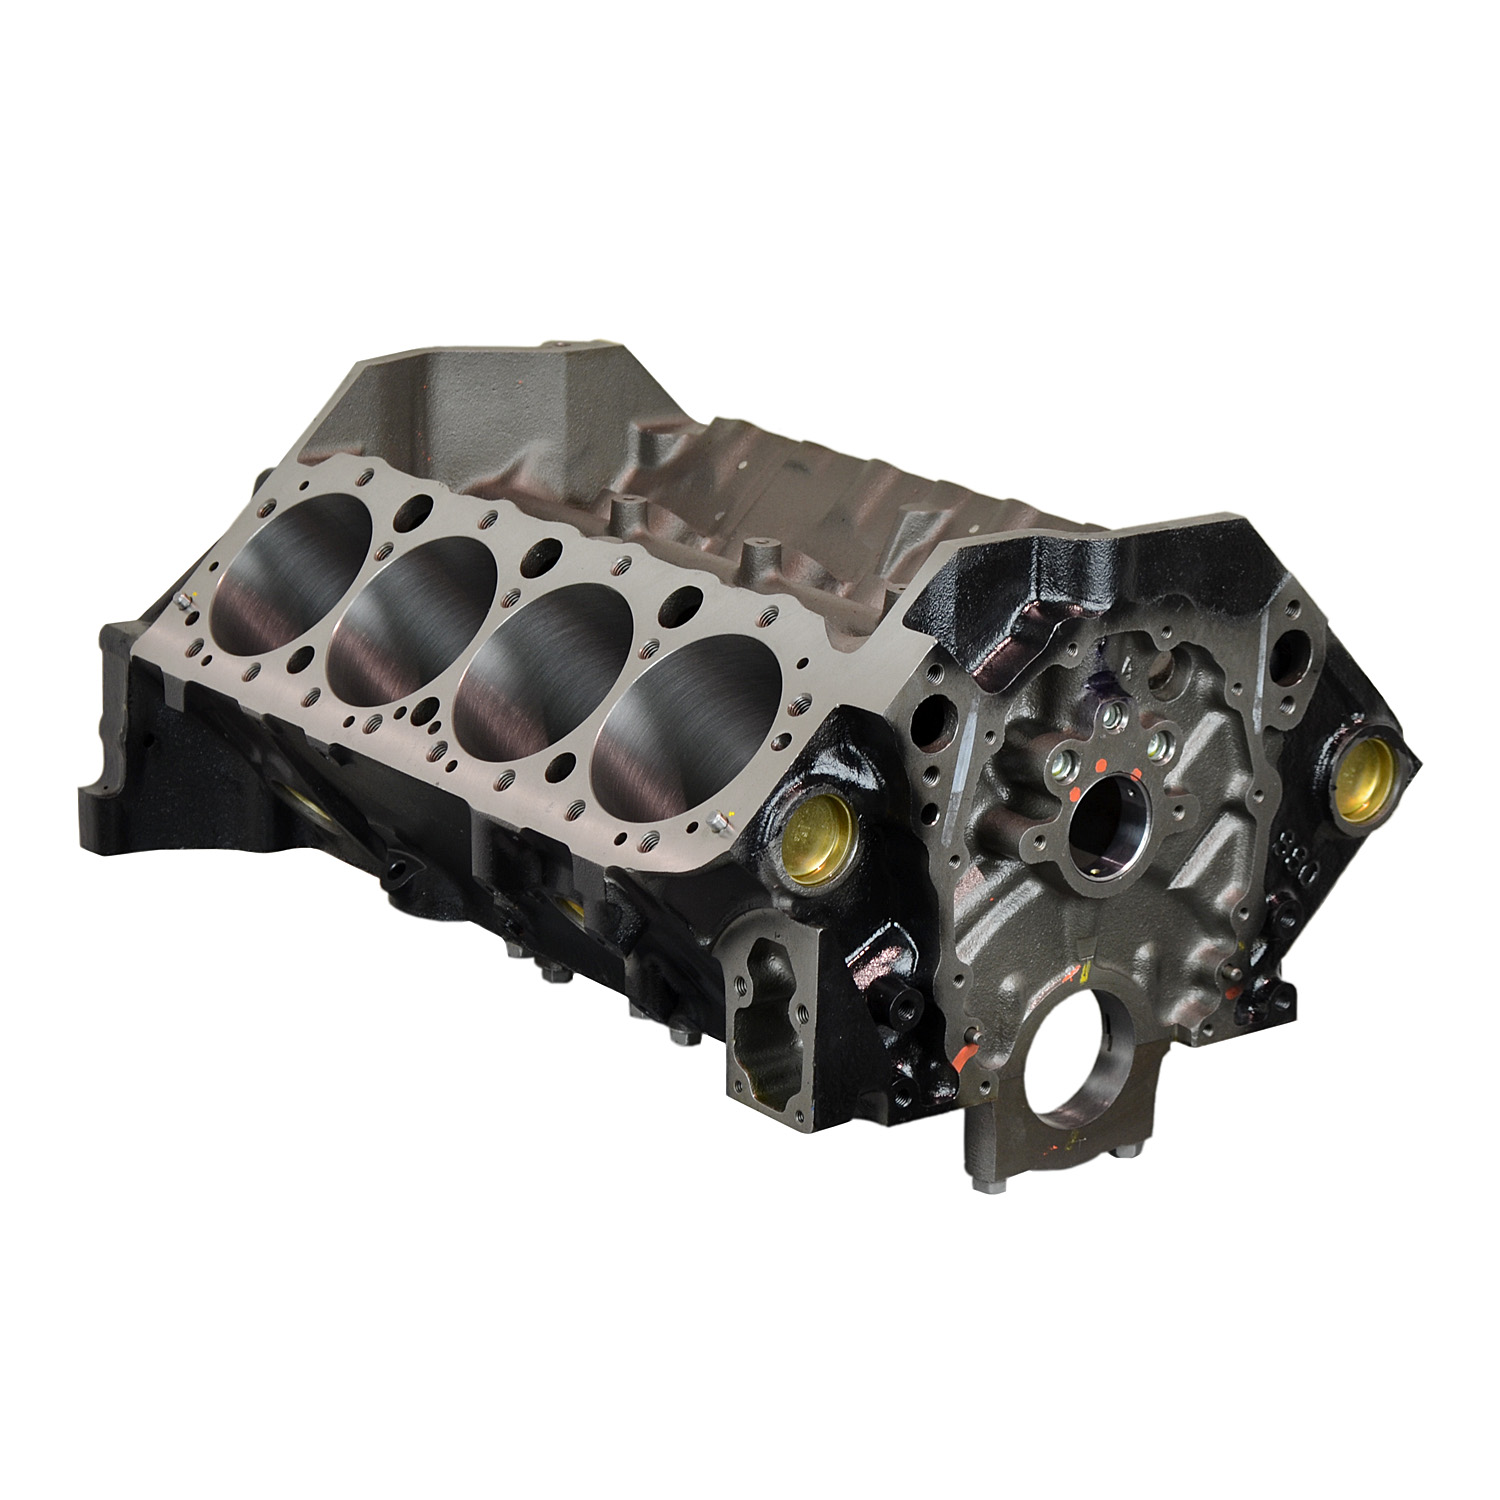 13ZC ATK Performance Engines Engine Block  Bare Automotive